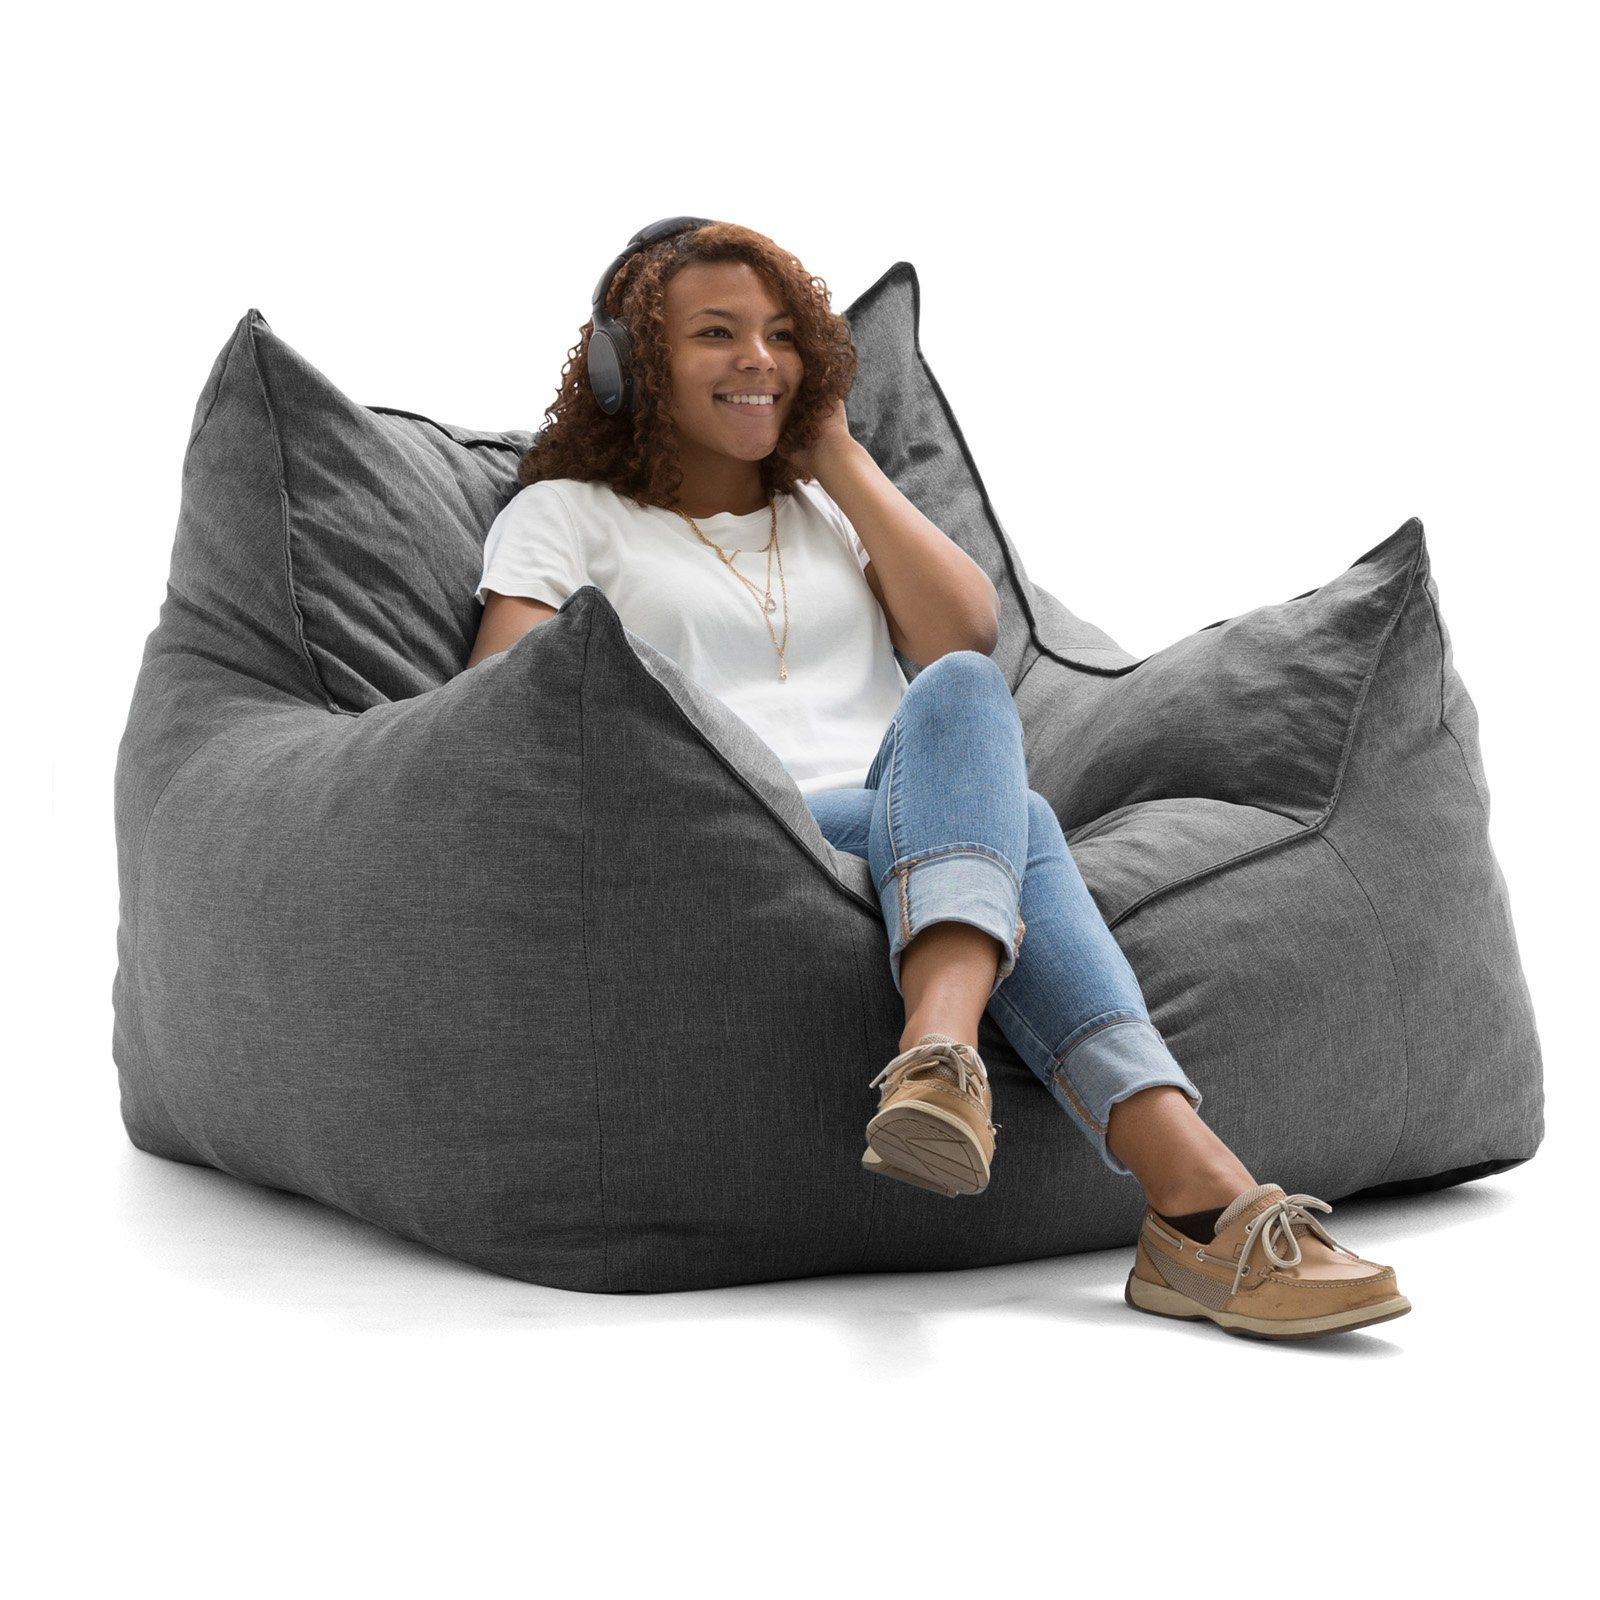 Enjoyable Lux By Big Joe Imperial Lounger Union Bean Bag Gray Ibusinesslaw Wood Chair Design Ideas Ibusinesslaworg